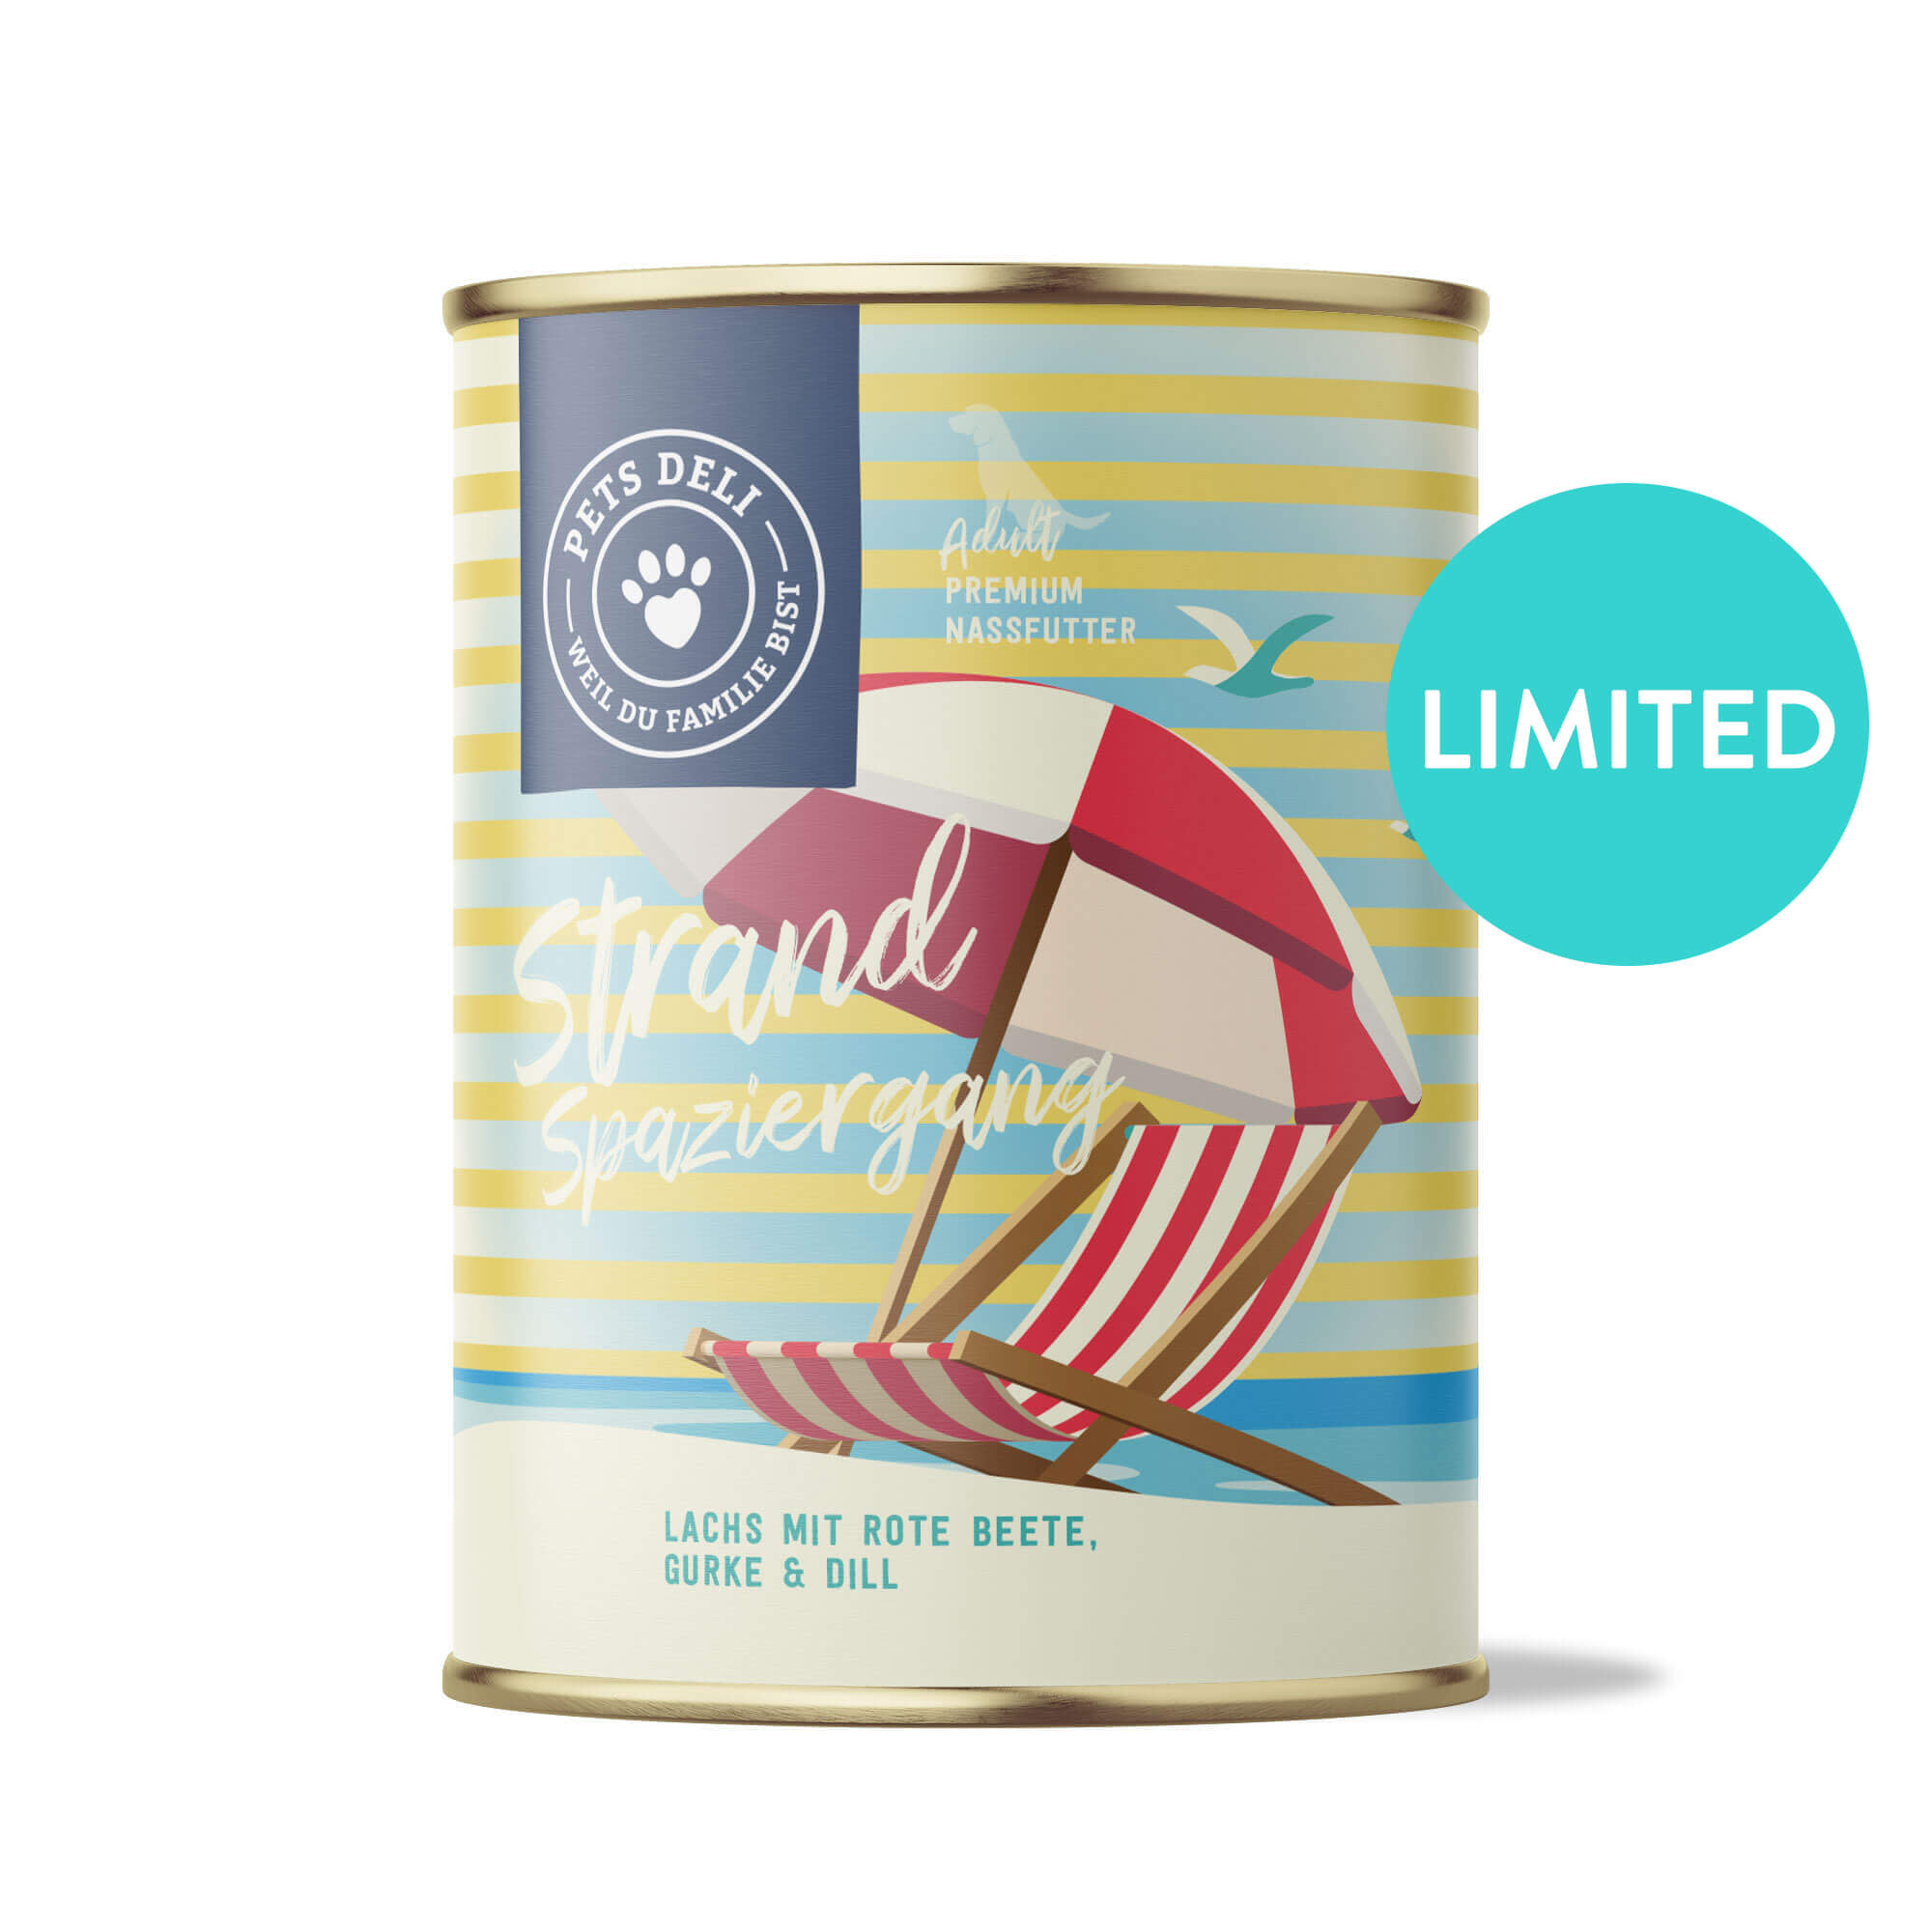 210618-rendering-hund-nafu-specialedition-400g-sommer-01-limited